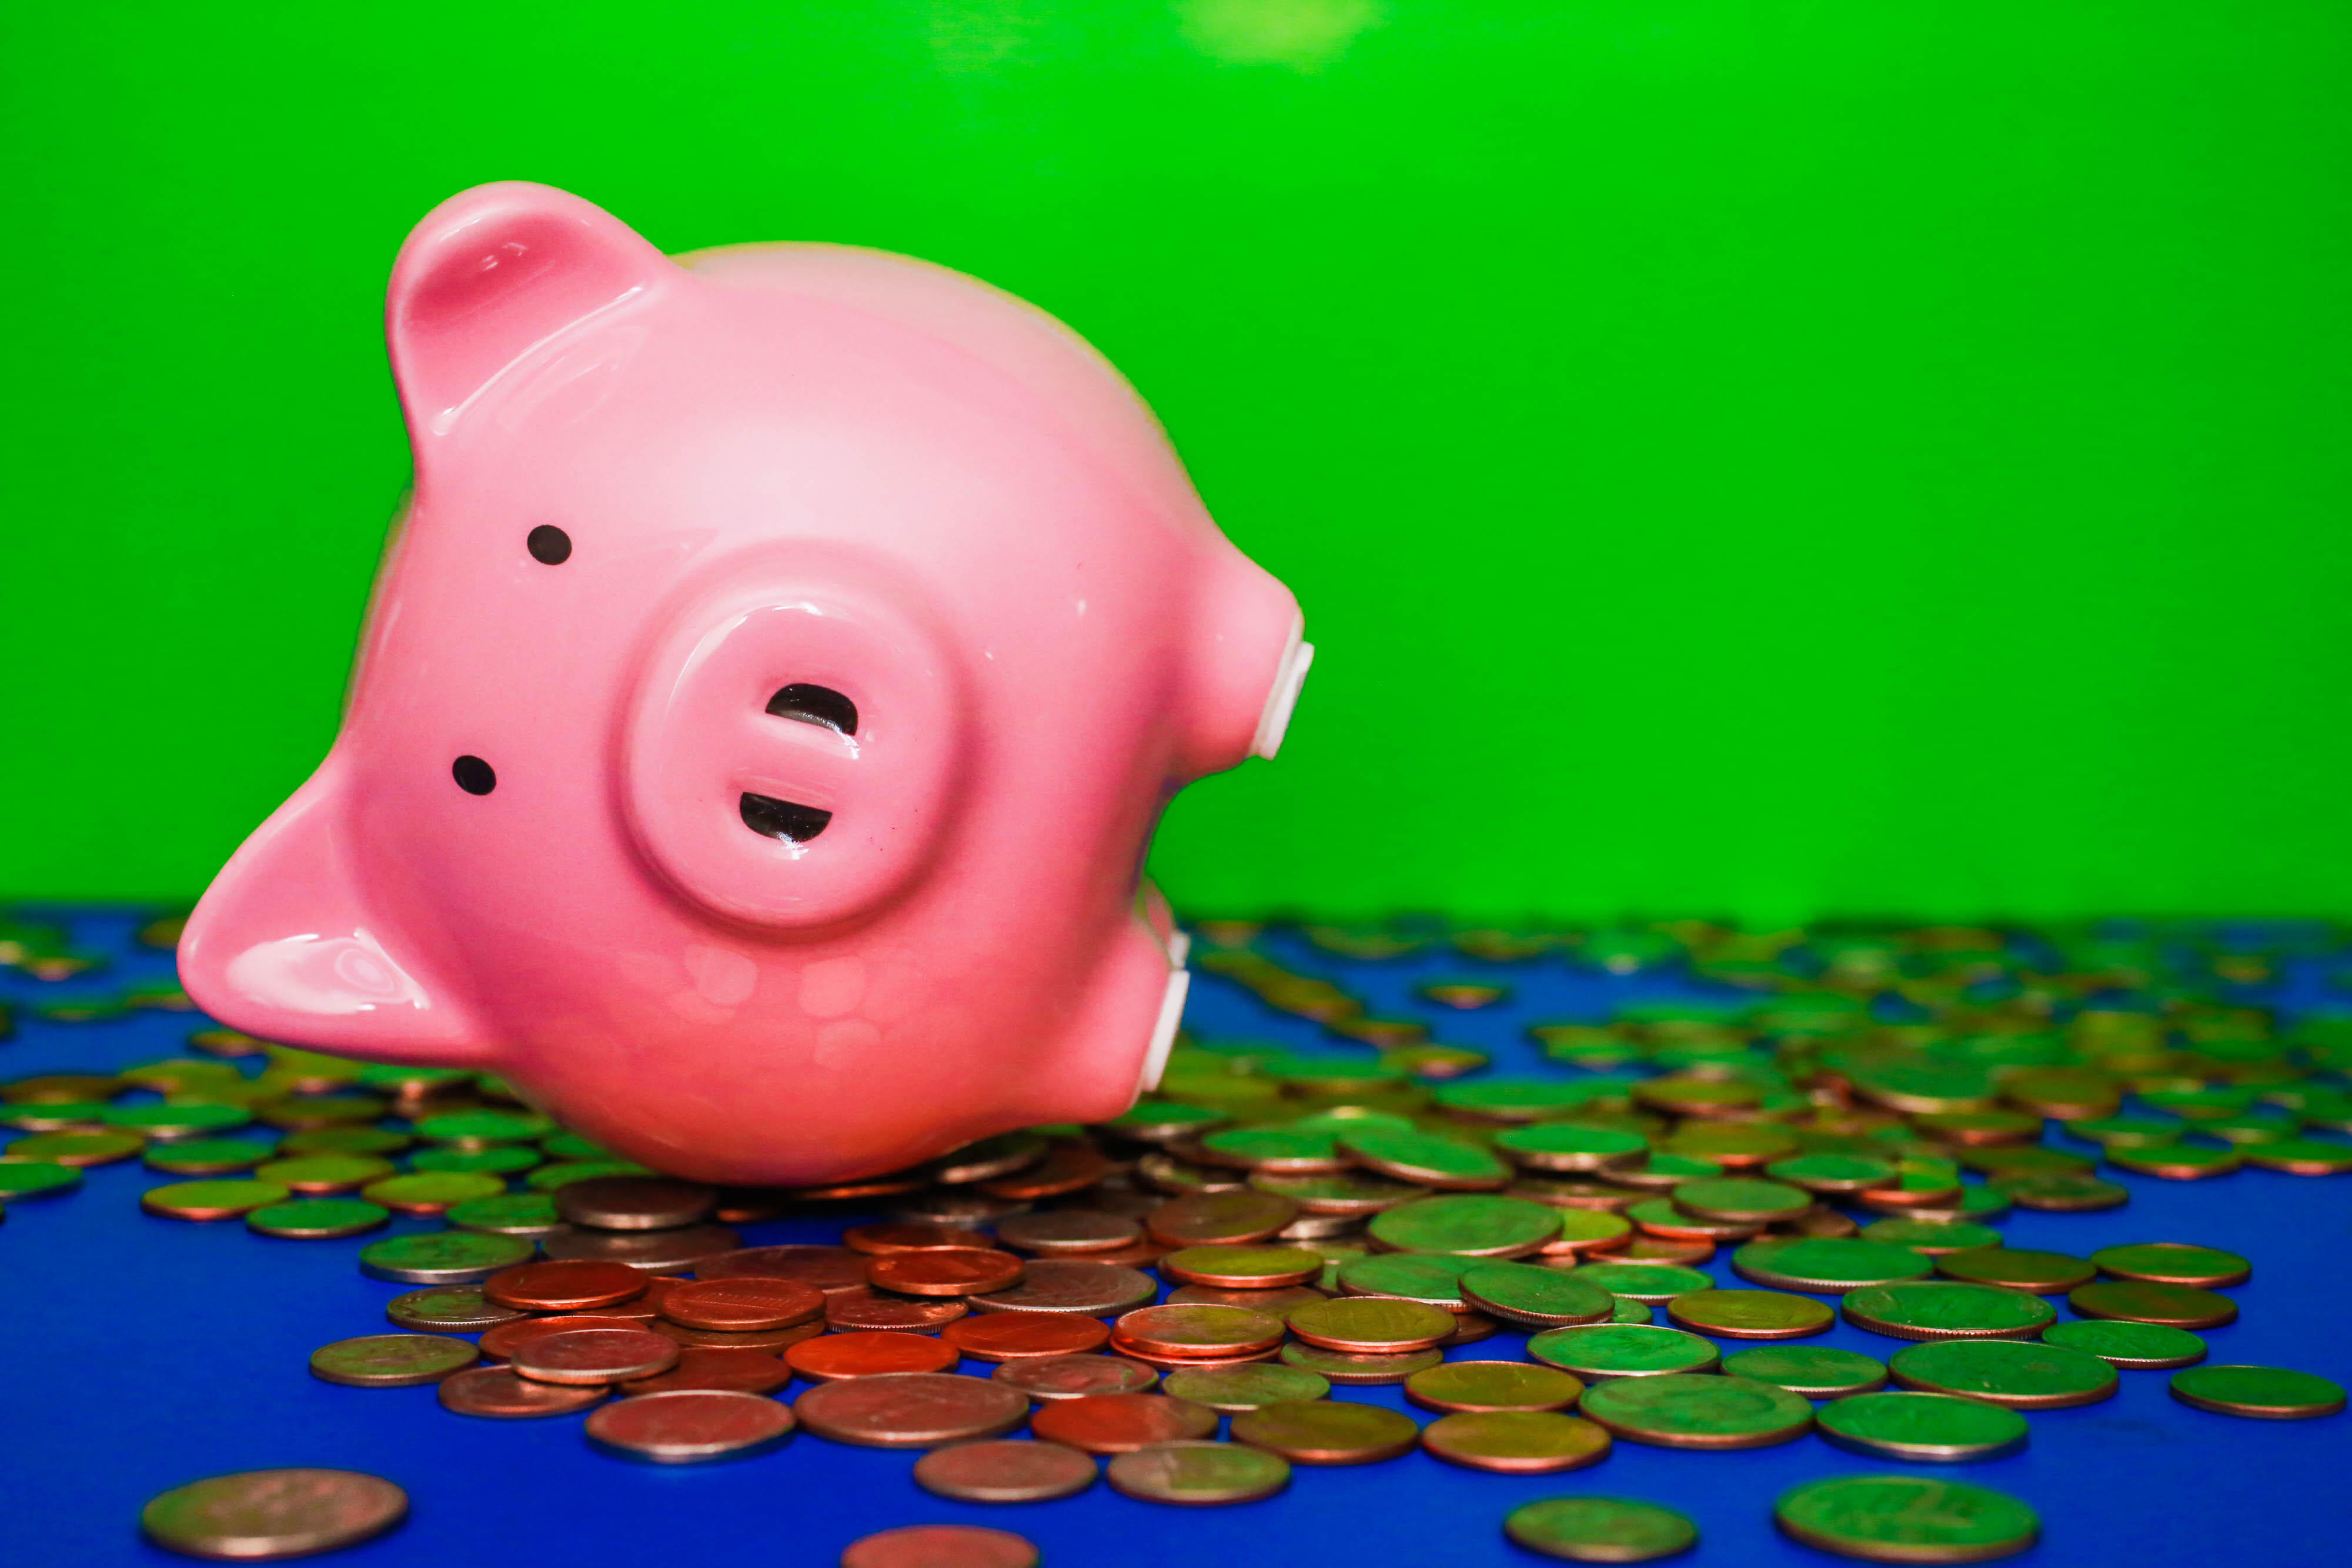 breaking-the-piggy-bank-stimulus-check-cash-money-savings-debt-personal-finance-031